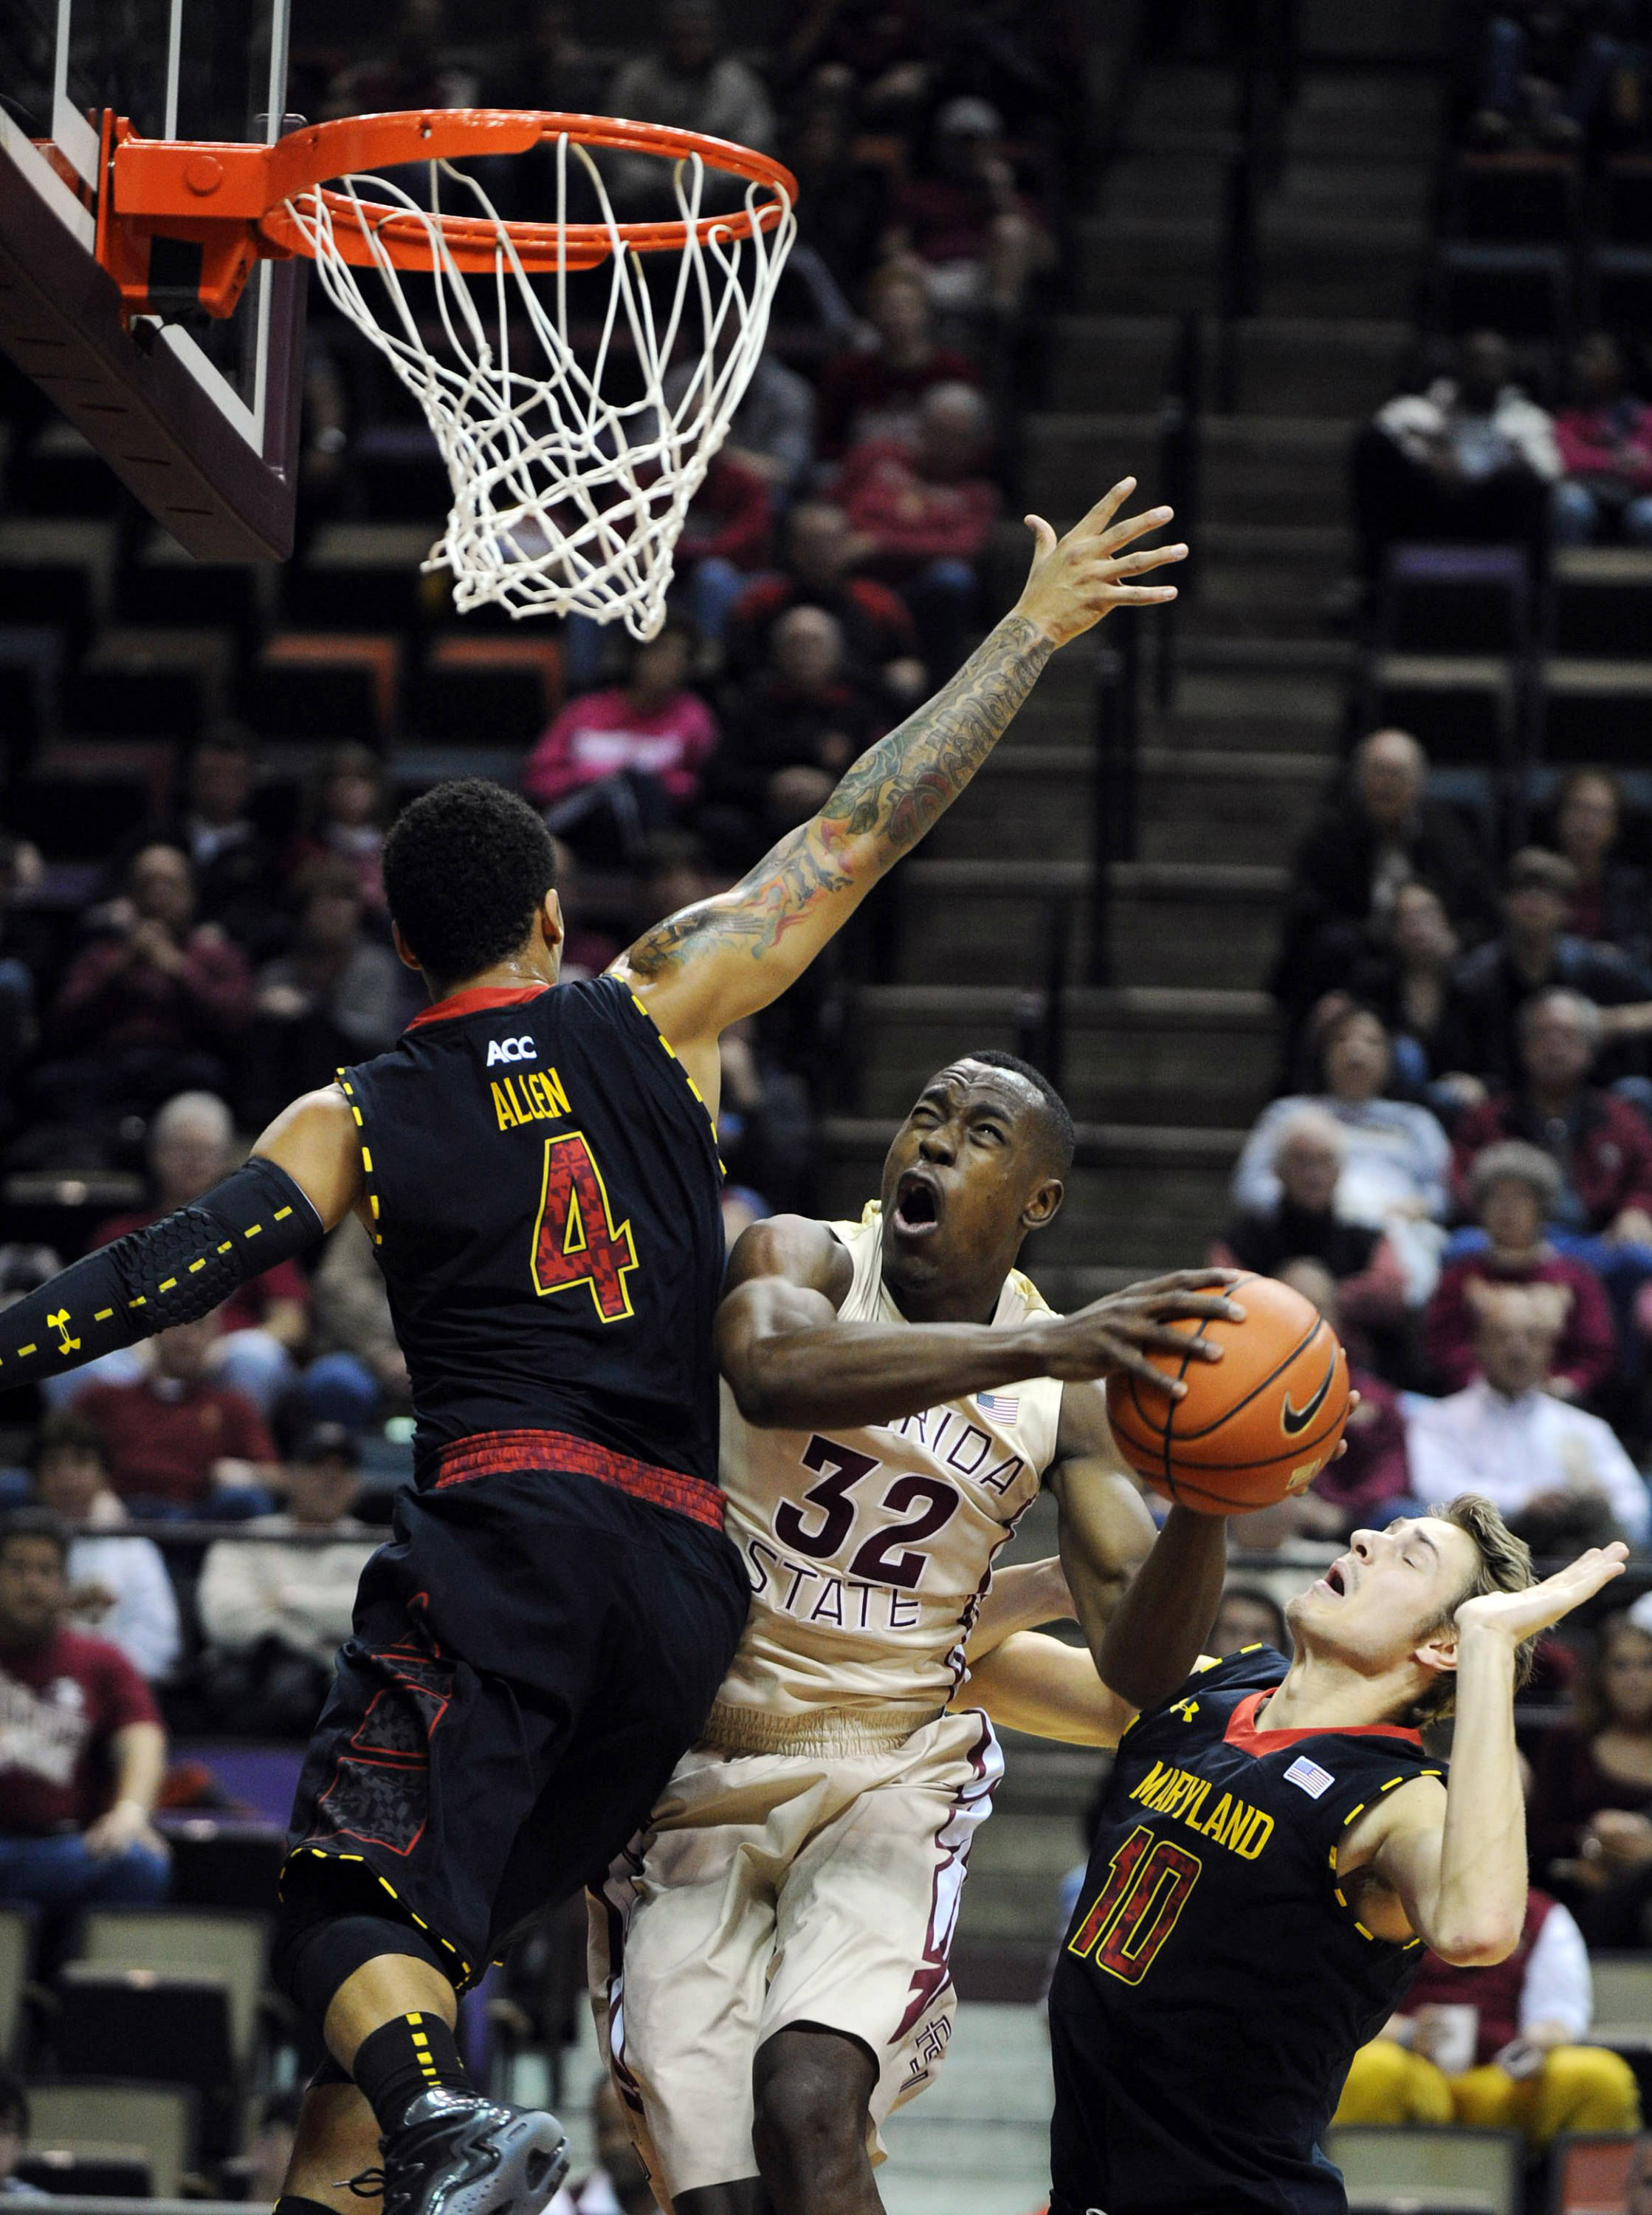 Jan 12, 2014; Tallahassee, FL, USA; Florida State Seminoles guard Montay Brandon (32) shoots the ball around Maryland Terrapins guard Seth Allen (4) during the first half at Donald L. Tucker Center. Mandatory Credit: Melina Vastola-USA TODAY Sports